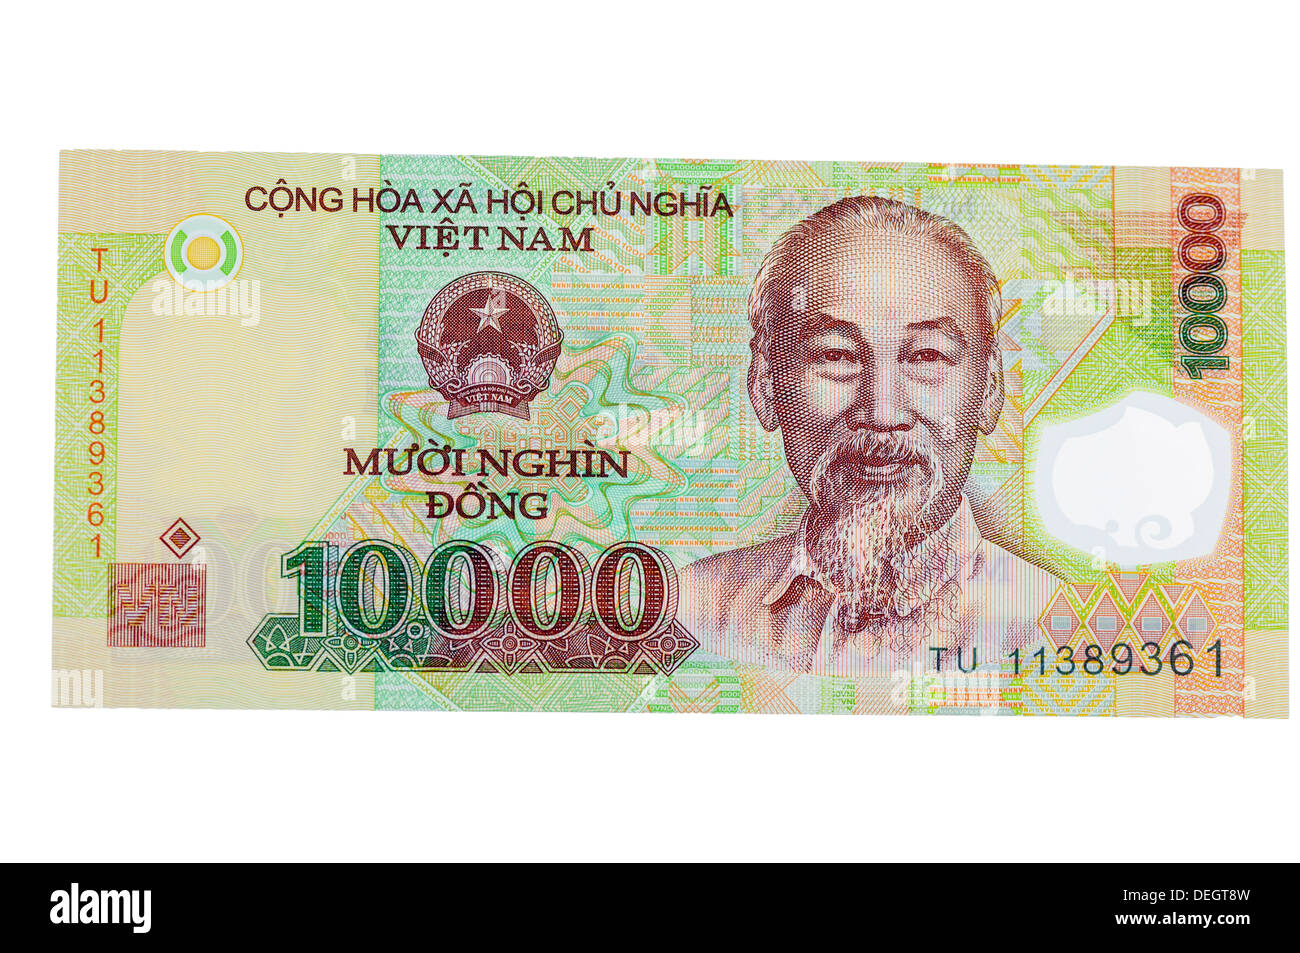 Vietnamese 10000 Dong polymer (plastic) bank note - Stock Image